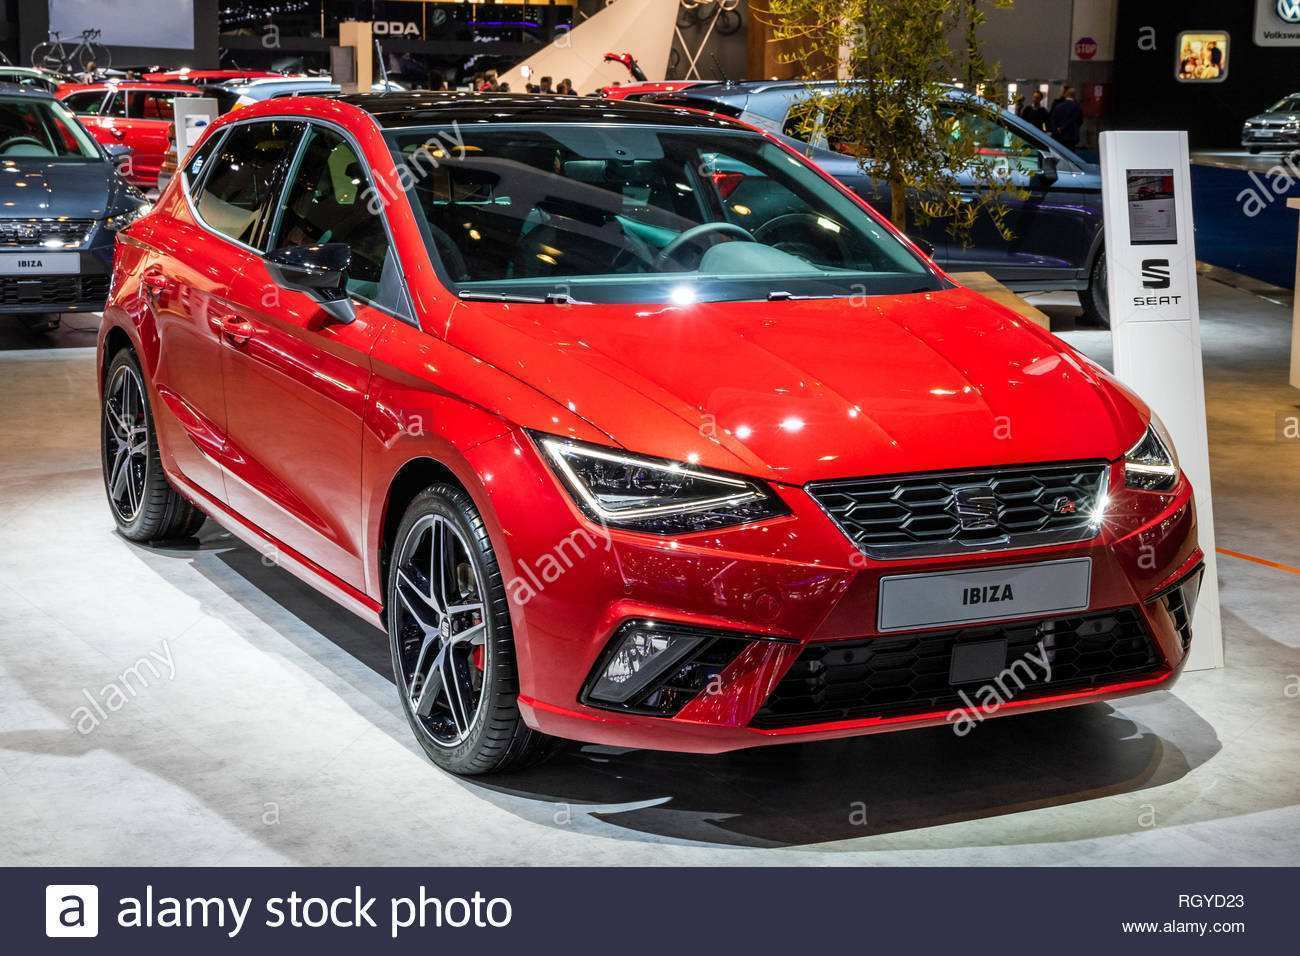 68 New 2019 Seat Ibiza Engine